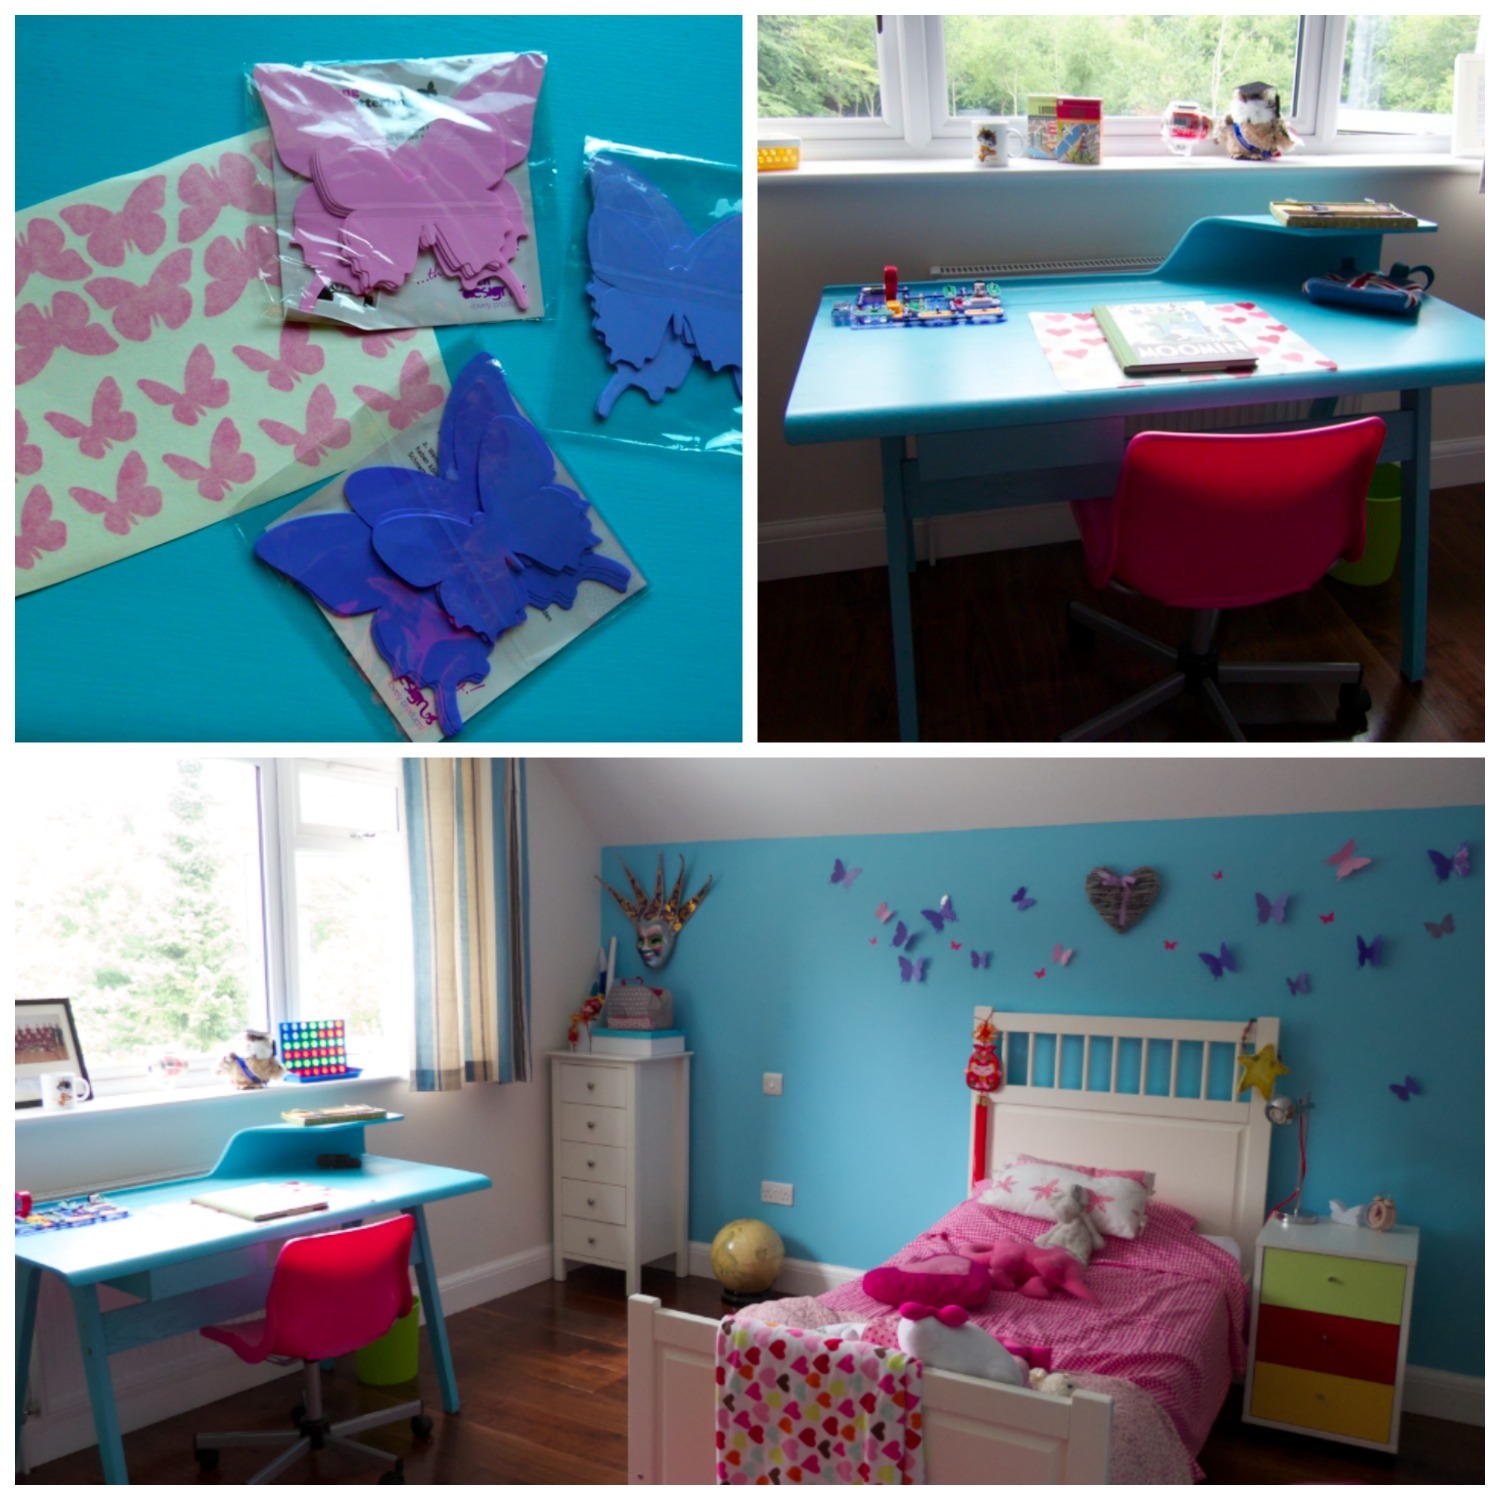 buy popular f41b5 277dd baby steps in making a house into a home: next kids bedroom ...